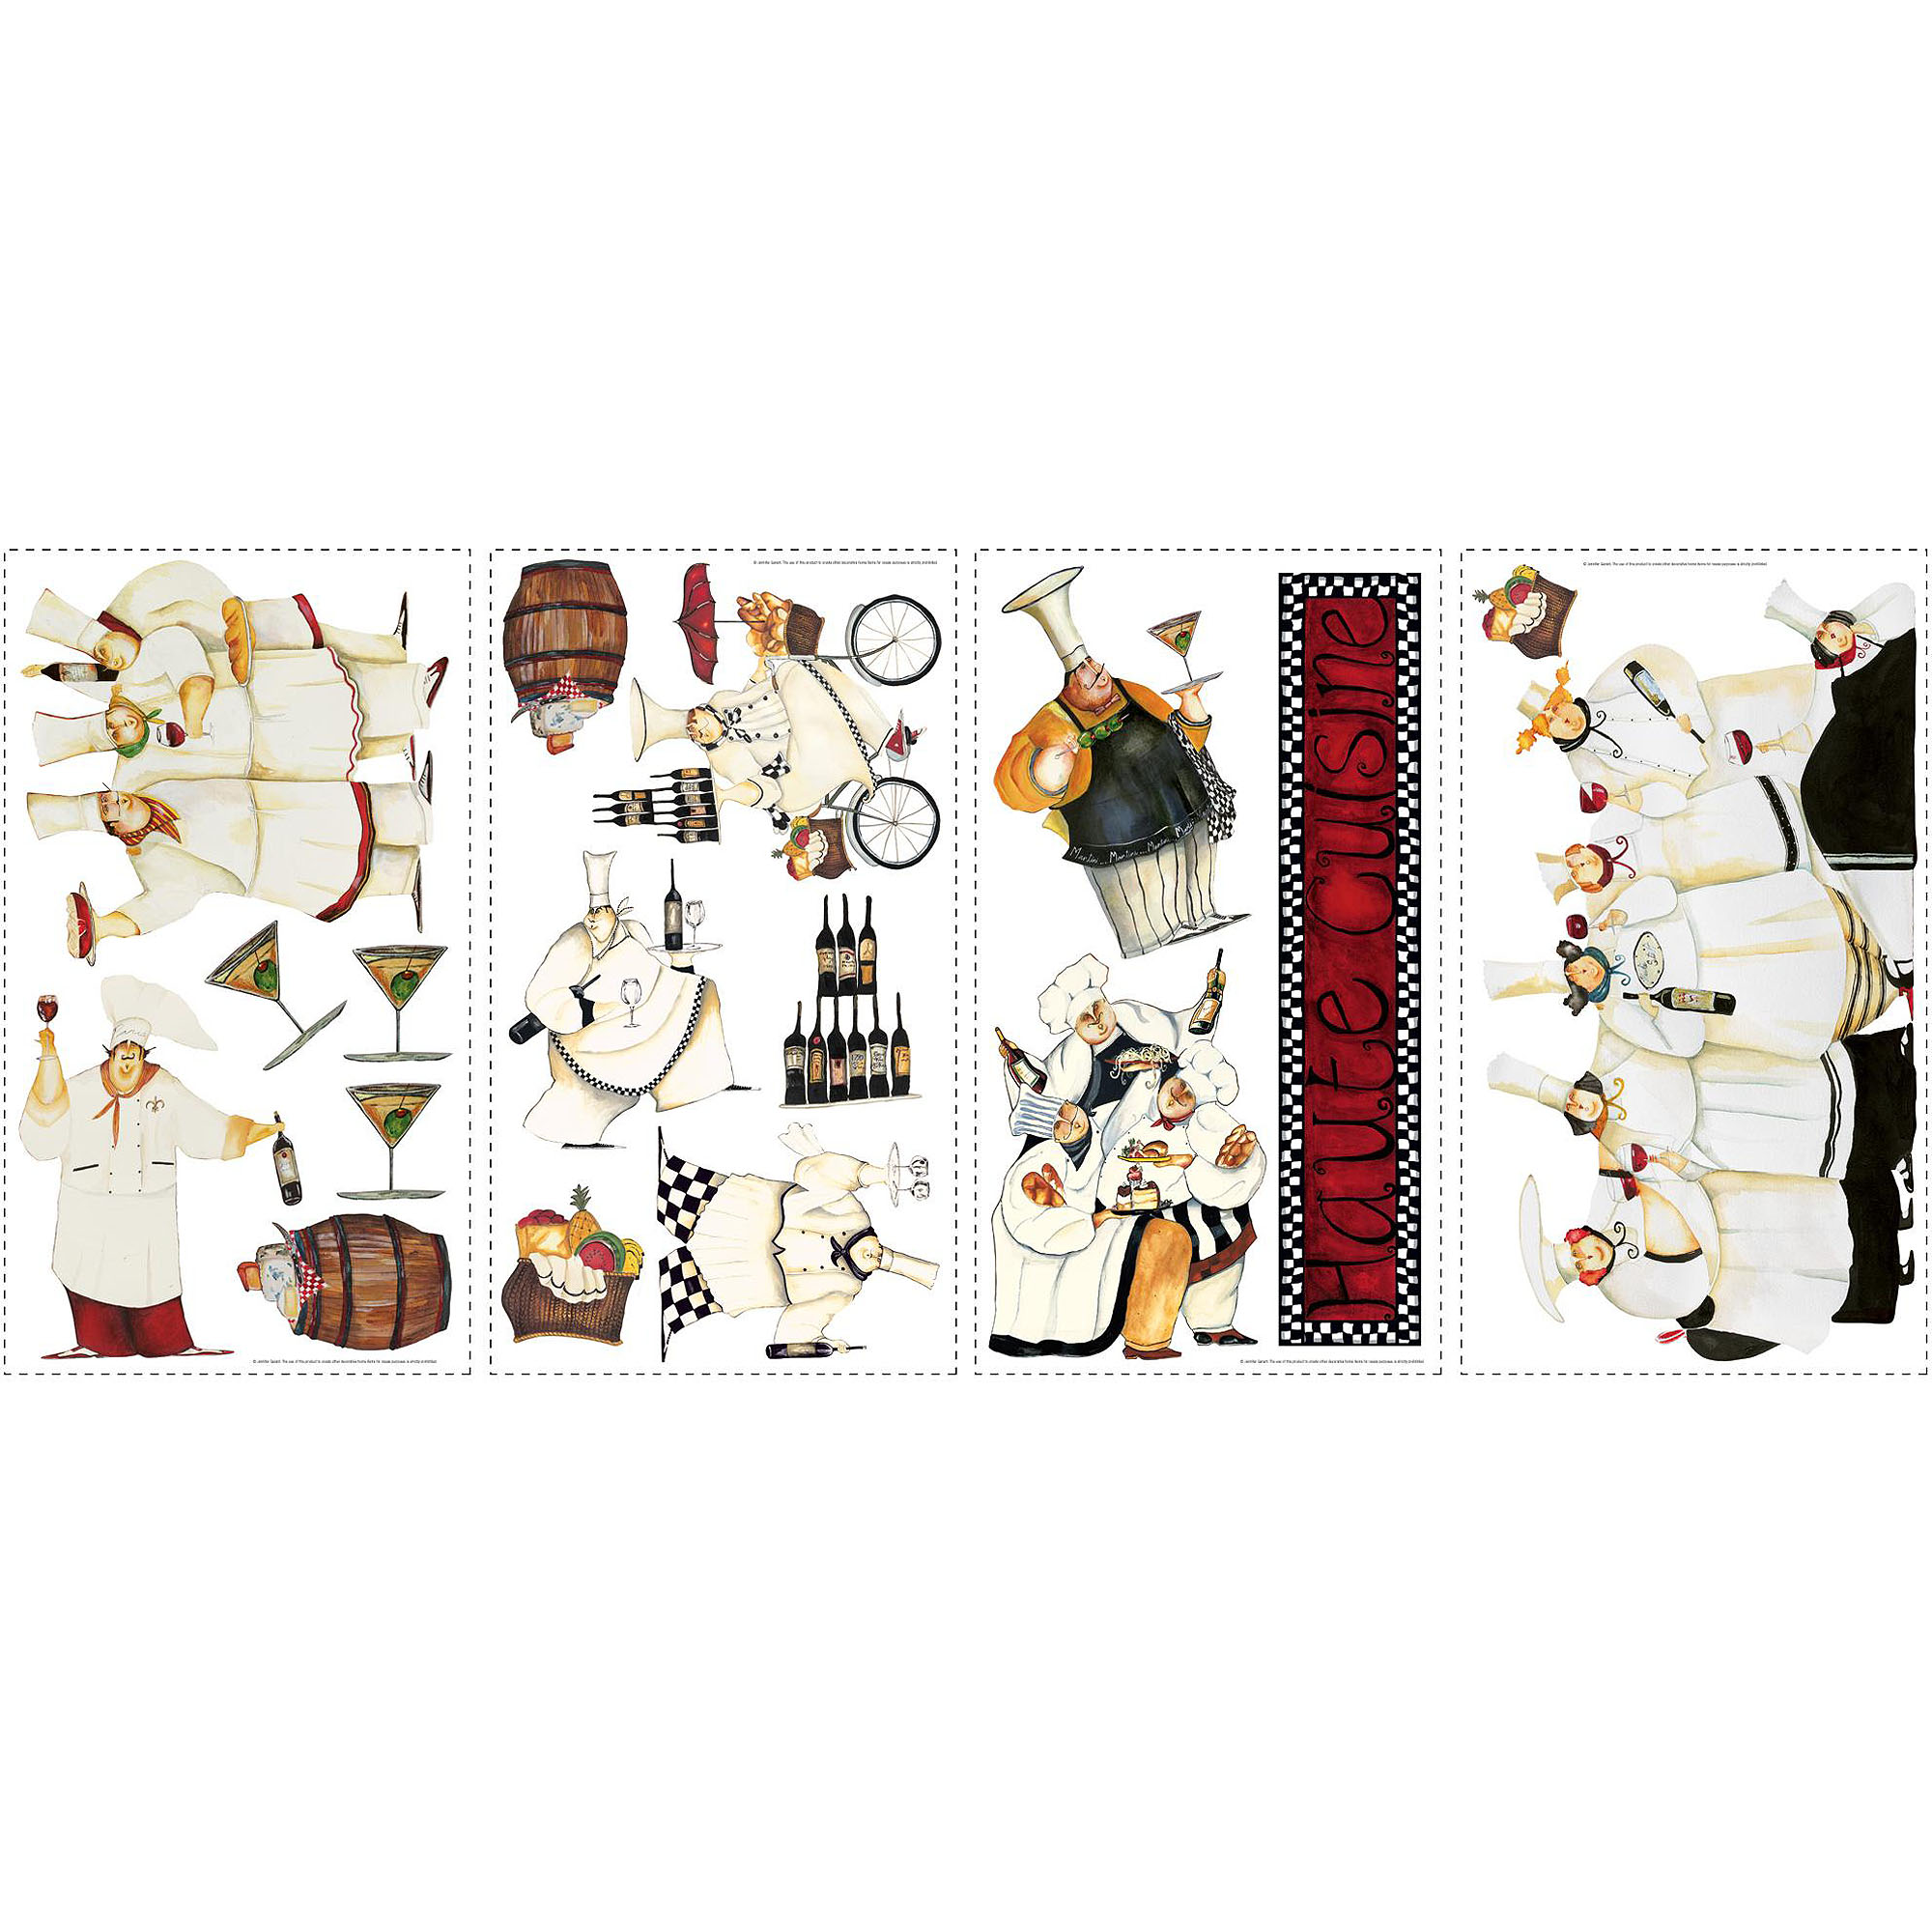 roommates chefs peel and stick wall decals walmart com